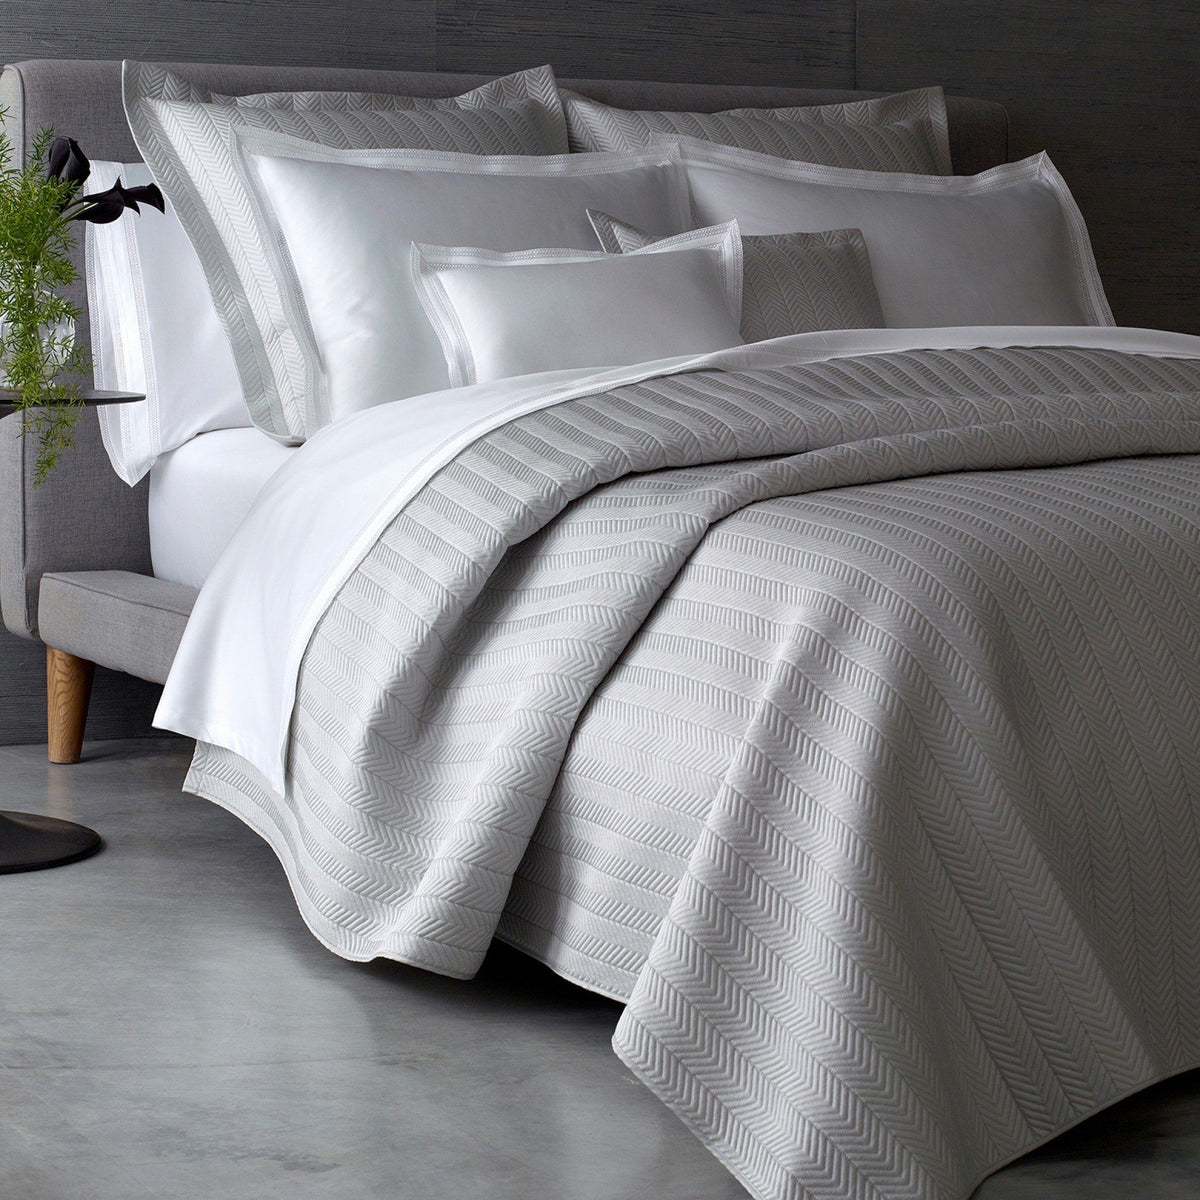 Matouk Bedding Netto Quilts Amp Shams Fig Linens And Home